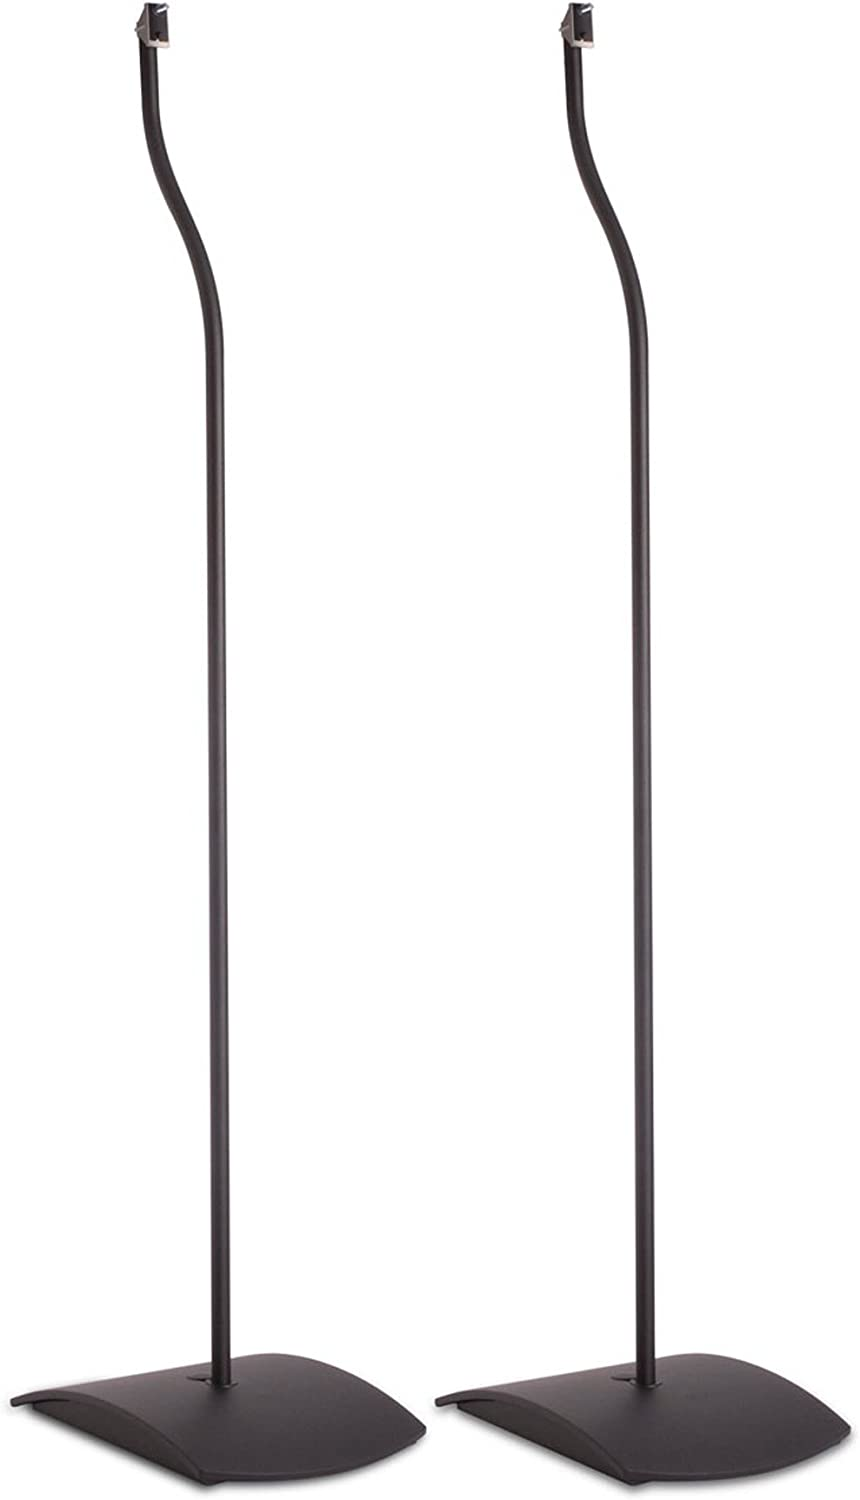 Bose UFS-20 Series II Universal Floor Stands, Black – 722139-0010